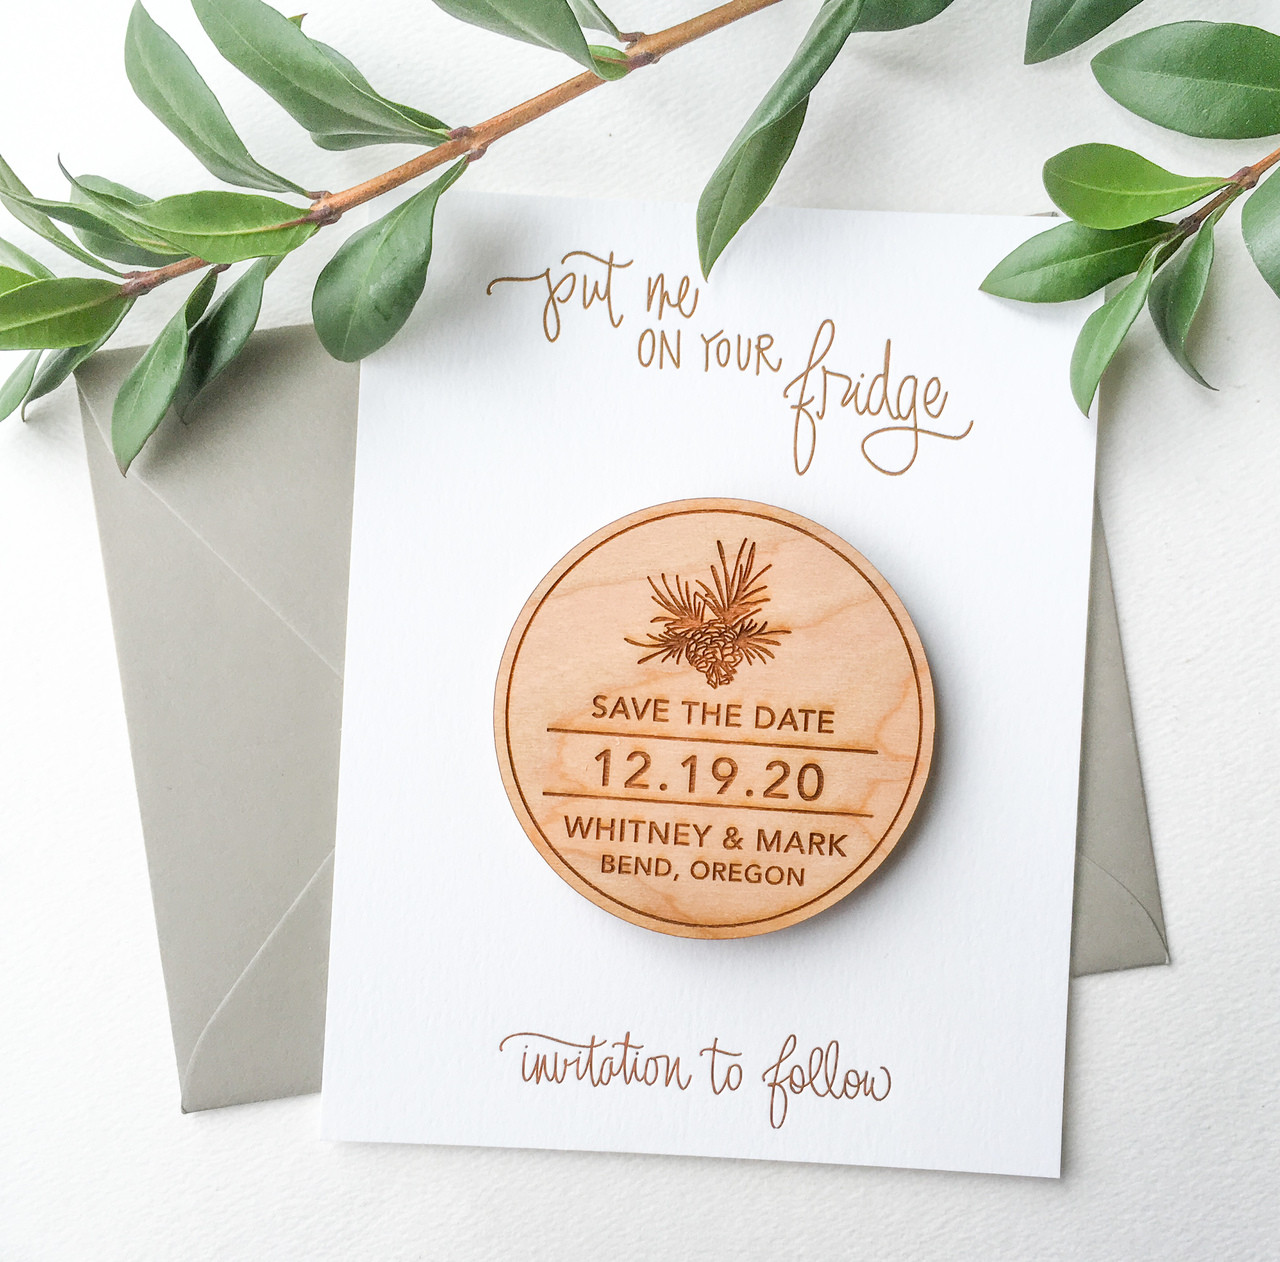 2ad4a99333be7 Save the Date Magnets - Pinecone (Set of 10)